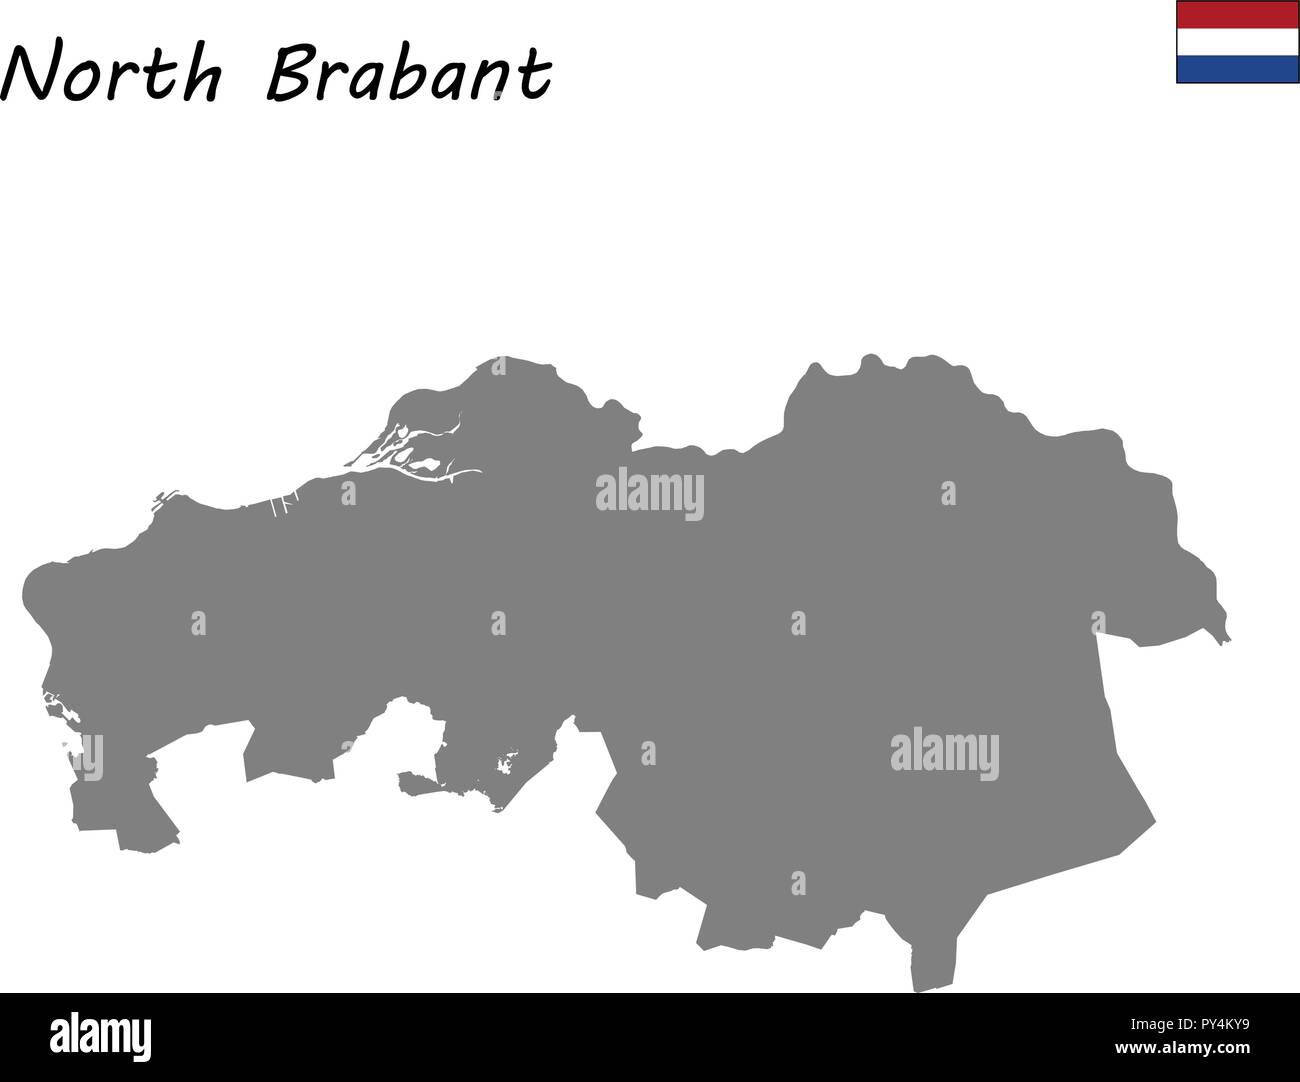 High Quality map province of Netherlands. North Brabant - Stock Vector